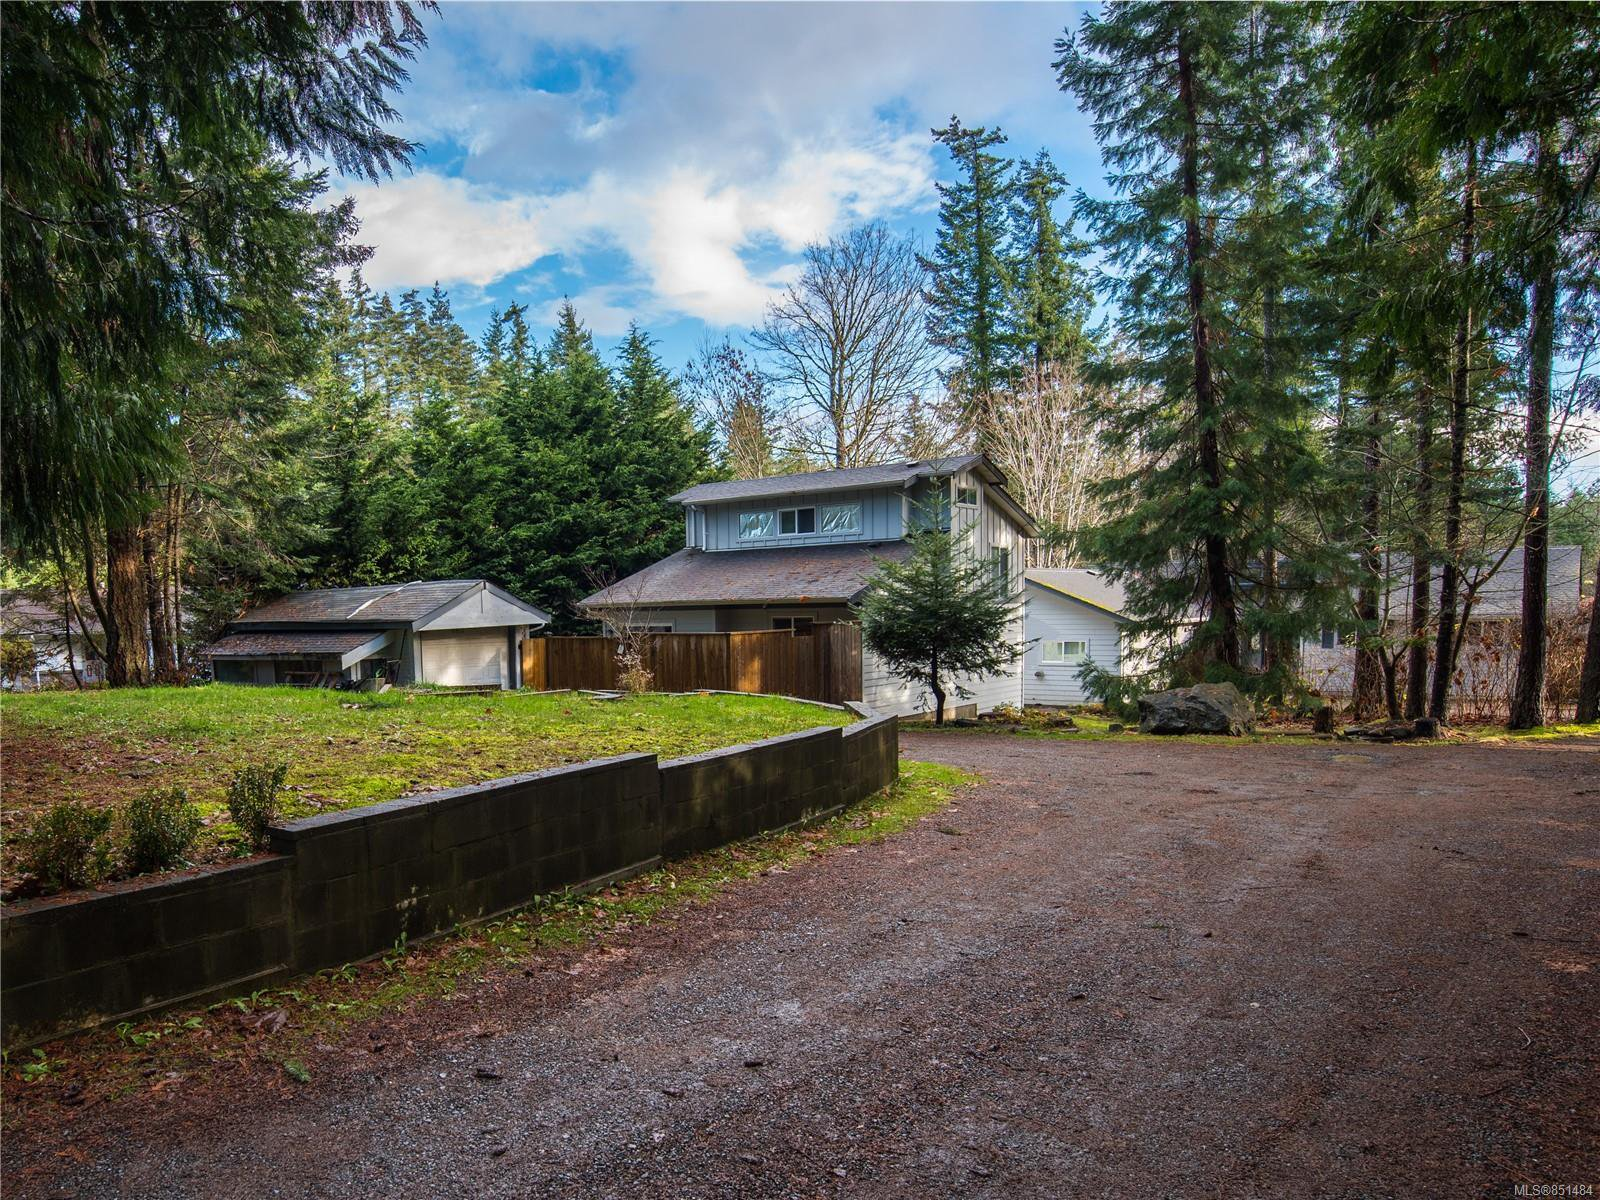 Main Photo: 1490 Hudson Rd in : CV Comox Peninsula House for sale (Comox Valley)  : MLS®# 851484